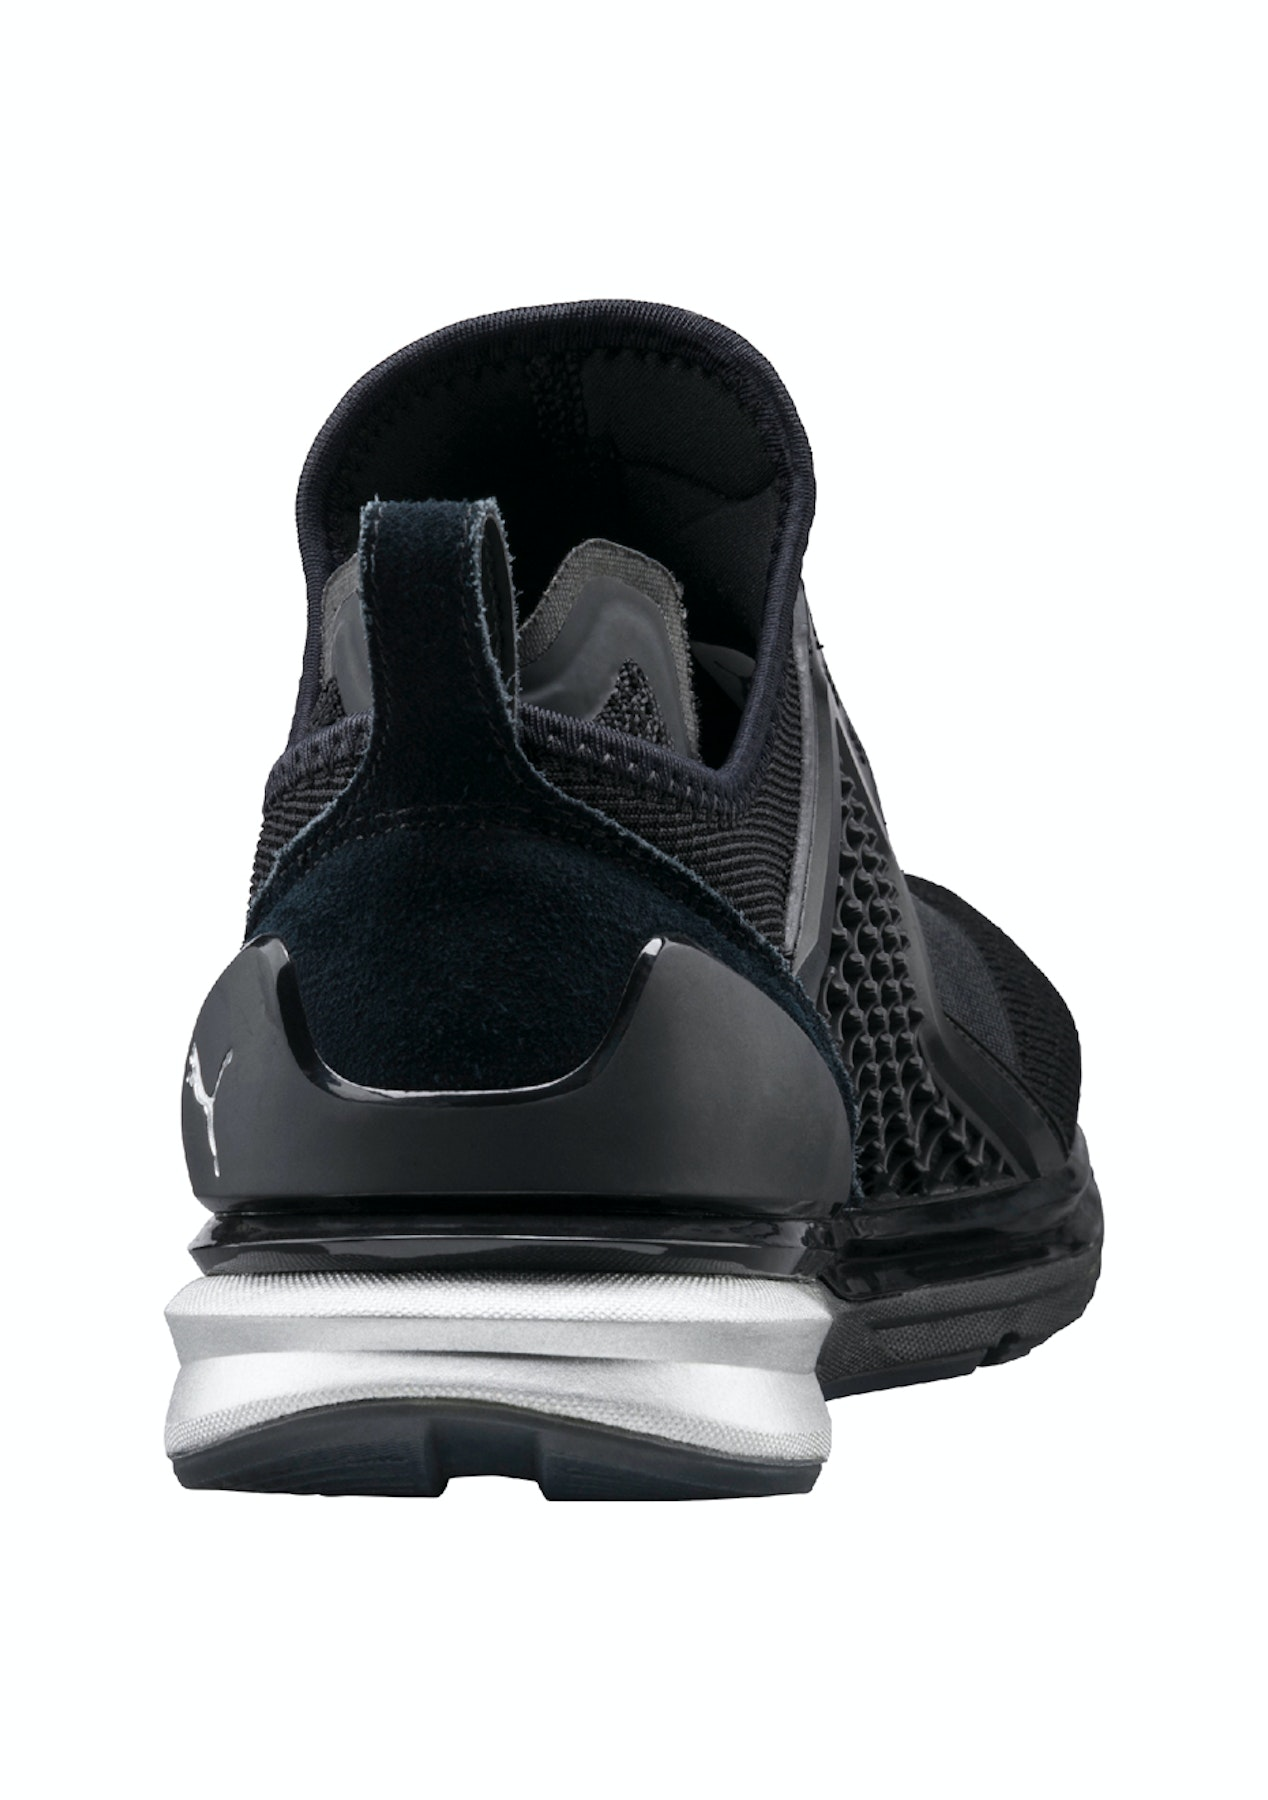 Puma Womens - Ignite Limitless Metal Black - Up to 75% Off Puma - Onceit 82f46f958